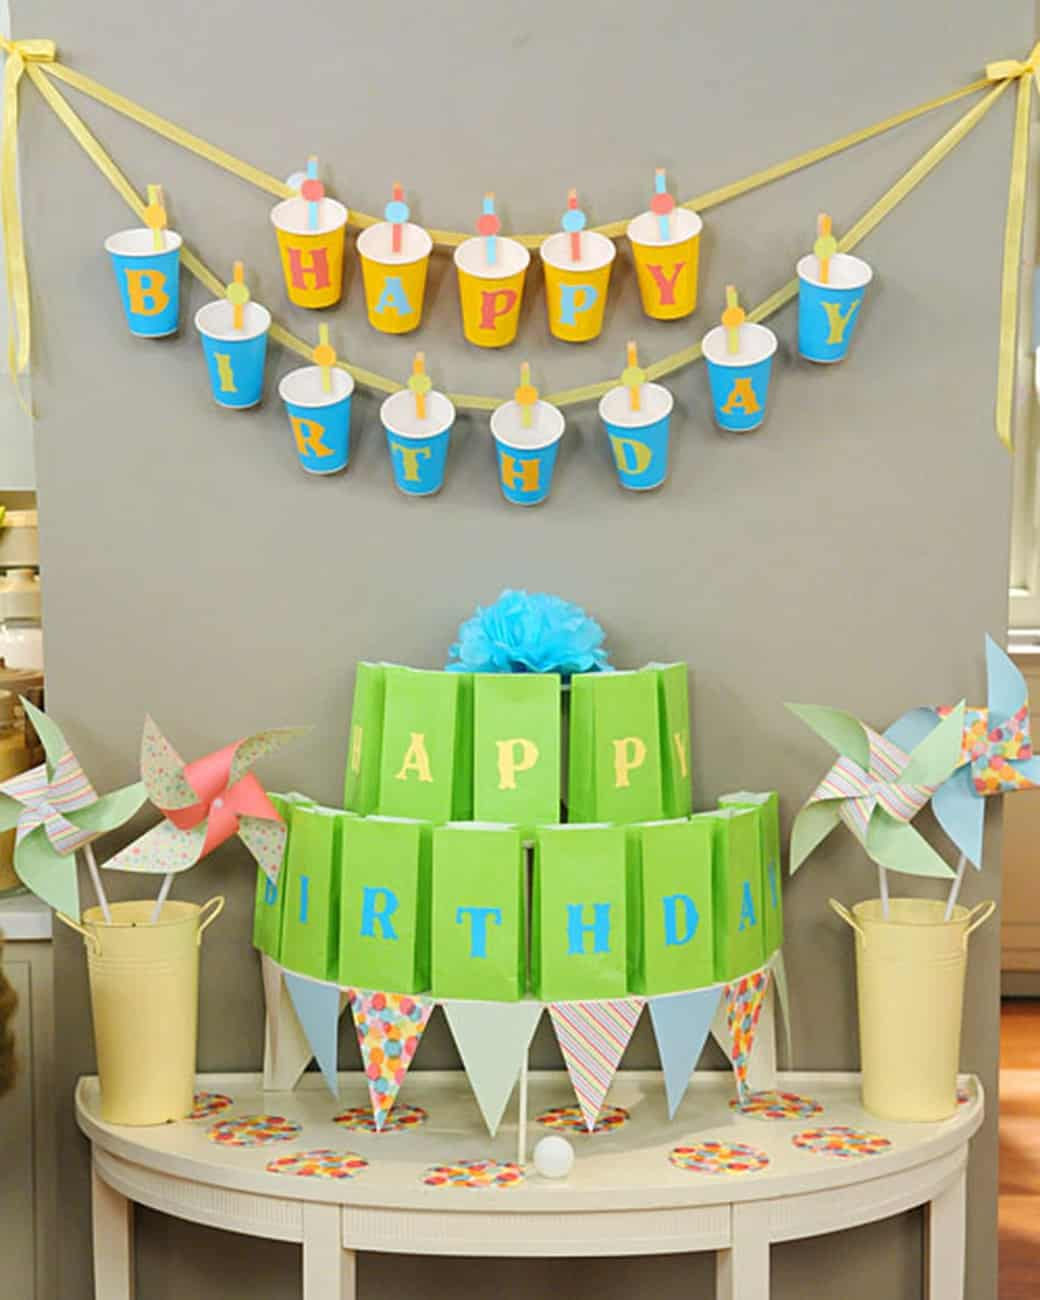 Party cup birthday garland